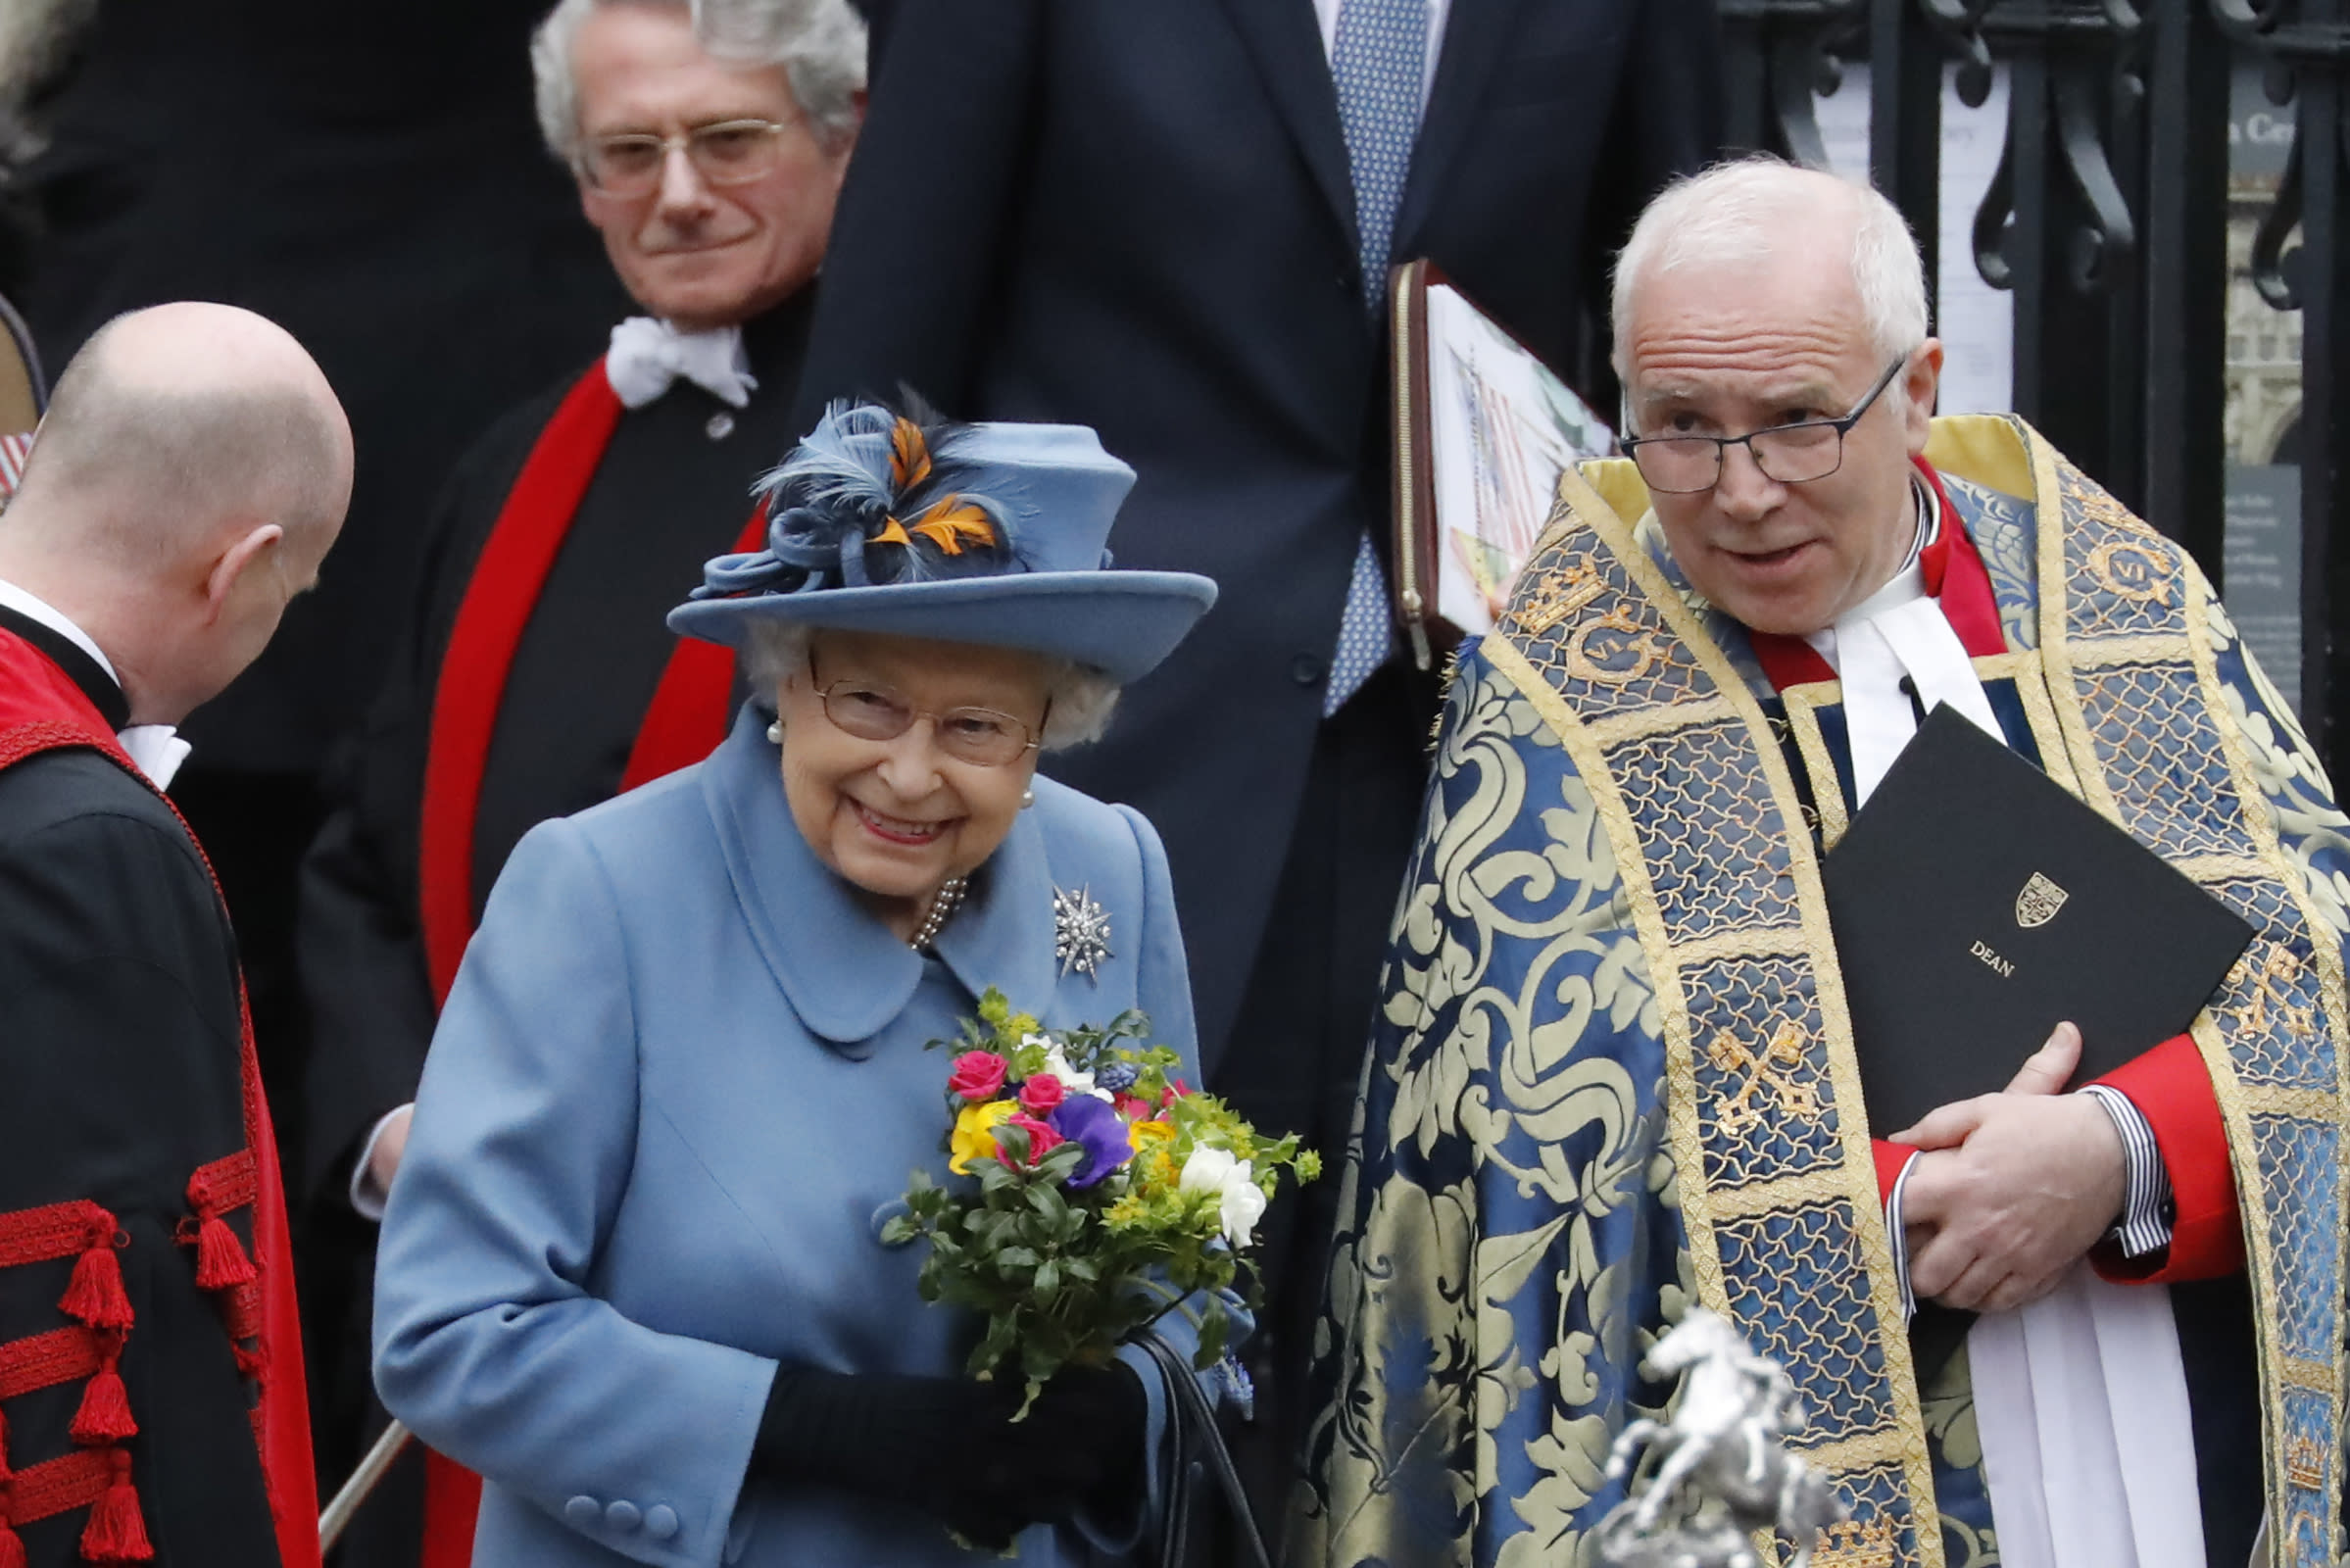 Britain's Queen Elizabeth II (L) and The Very Reverend Dr David Hoyle, Dean of Westminster leave after attending the annual Commonwealth Service at Westminster Abbey in London on March 09, 2020. - Britain's Queen Elizabeth II has been the Head of the Commonwealth throughout her reign. Organised by the Royal Commonwealth Society, the Service is the largest annual inter-faith gathering in the United Kingdom. (Photo by Tolga AKMEN / AFP) (Photo by TOLGA AKMEN/AFP via Getty Images)